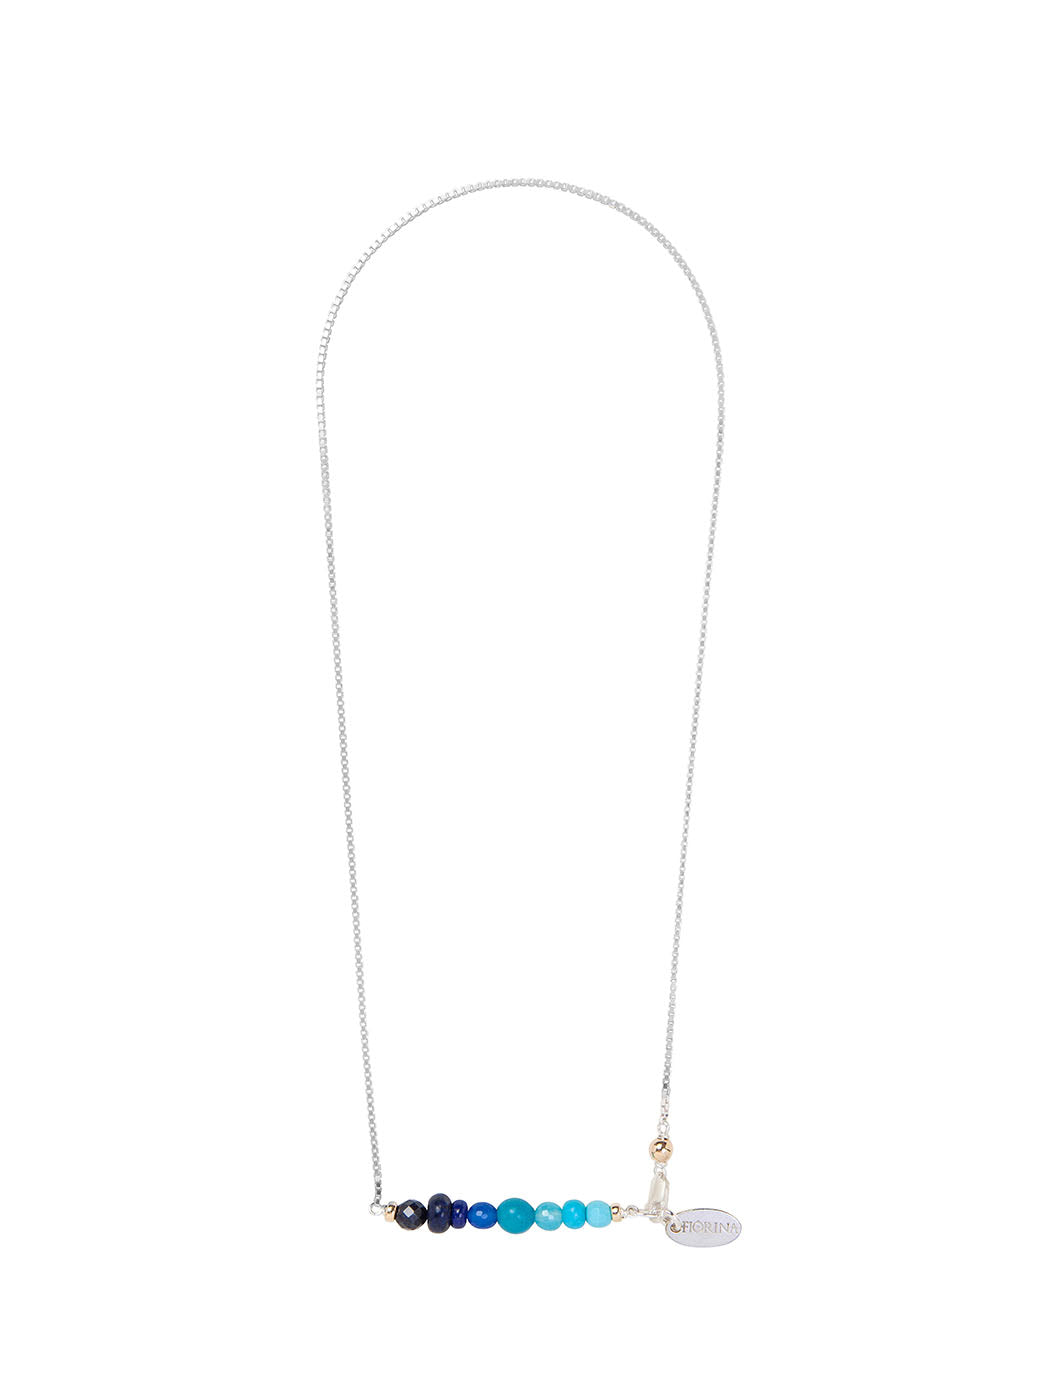 Fiorina Jewellery Ombre Necklace Blue Stones